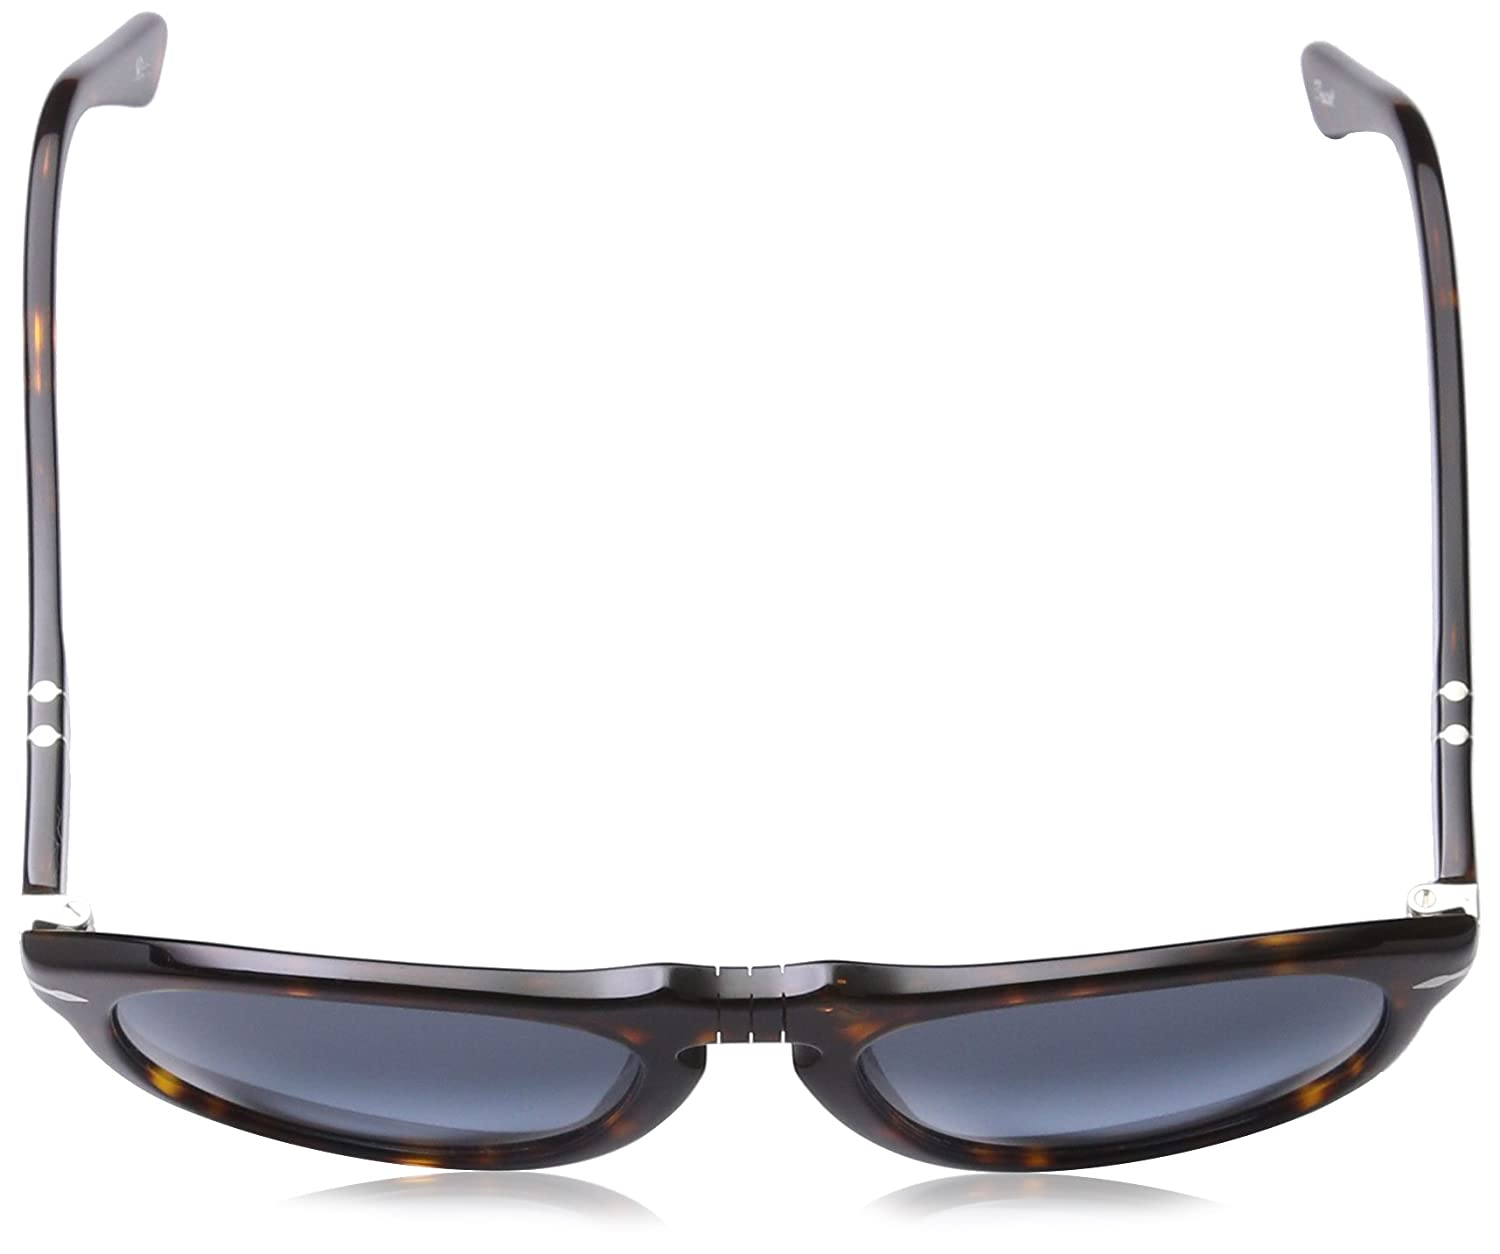 648be7624a Amazon.com  Persol PO649 Sunglasses 95 32 Shiny Black frame with Gray  Gradient lenses 54mm  Sports   Outdoors